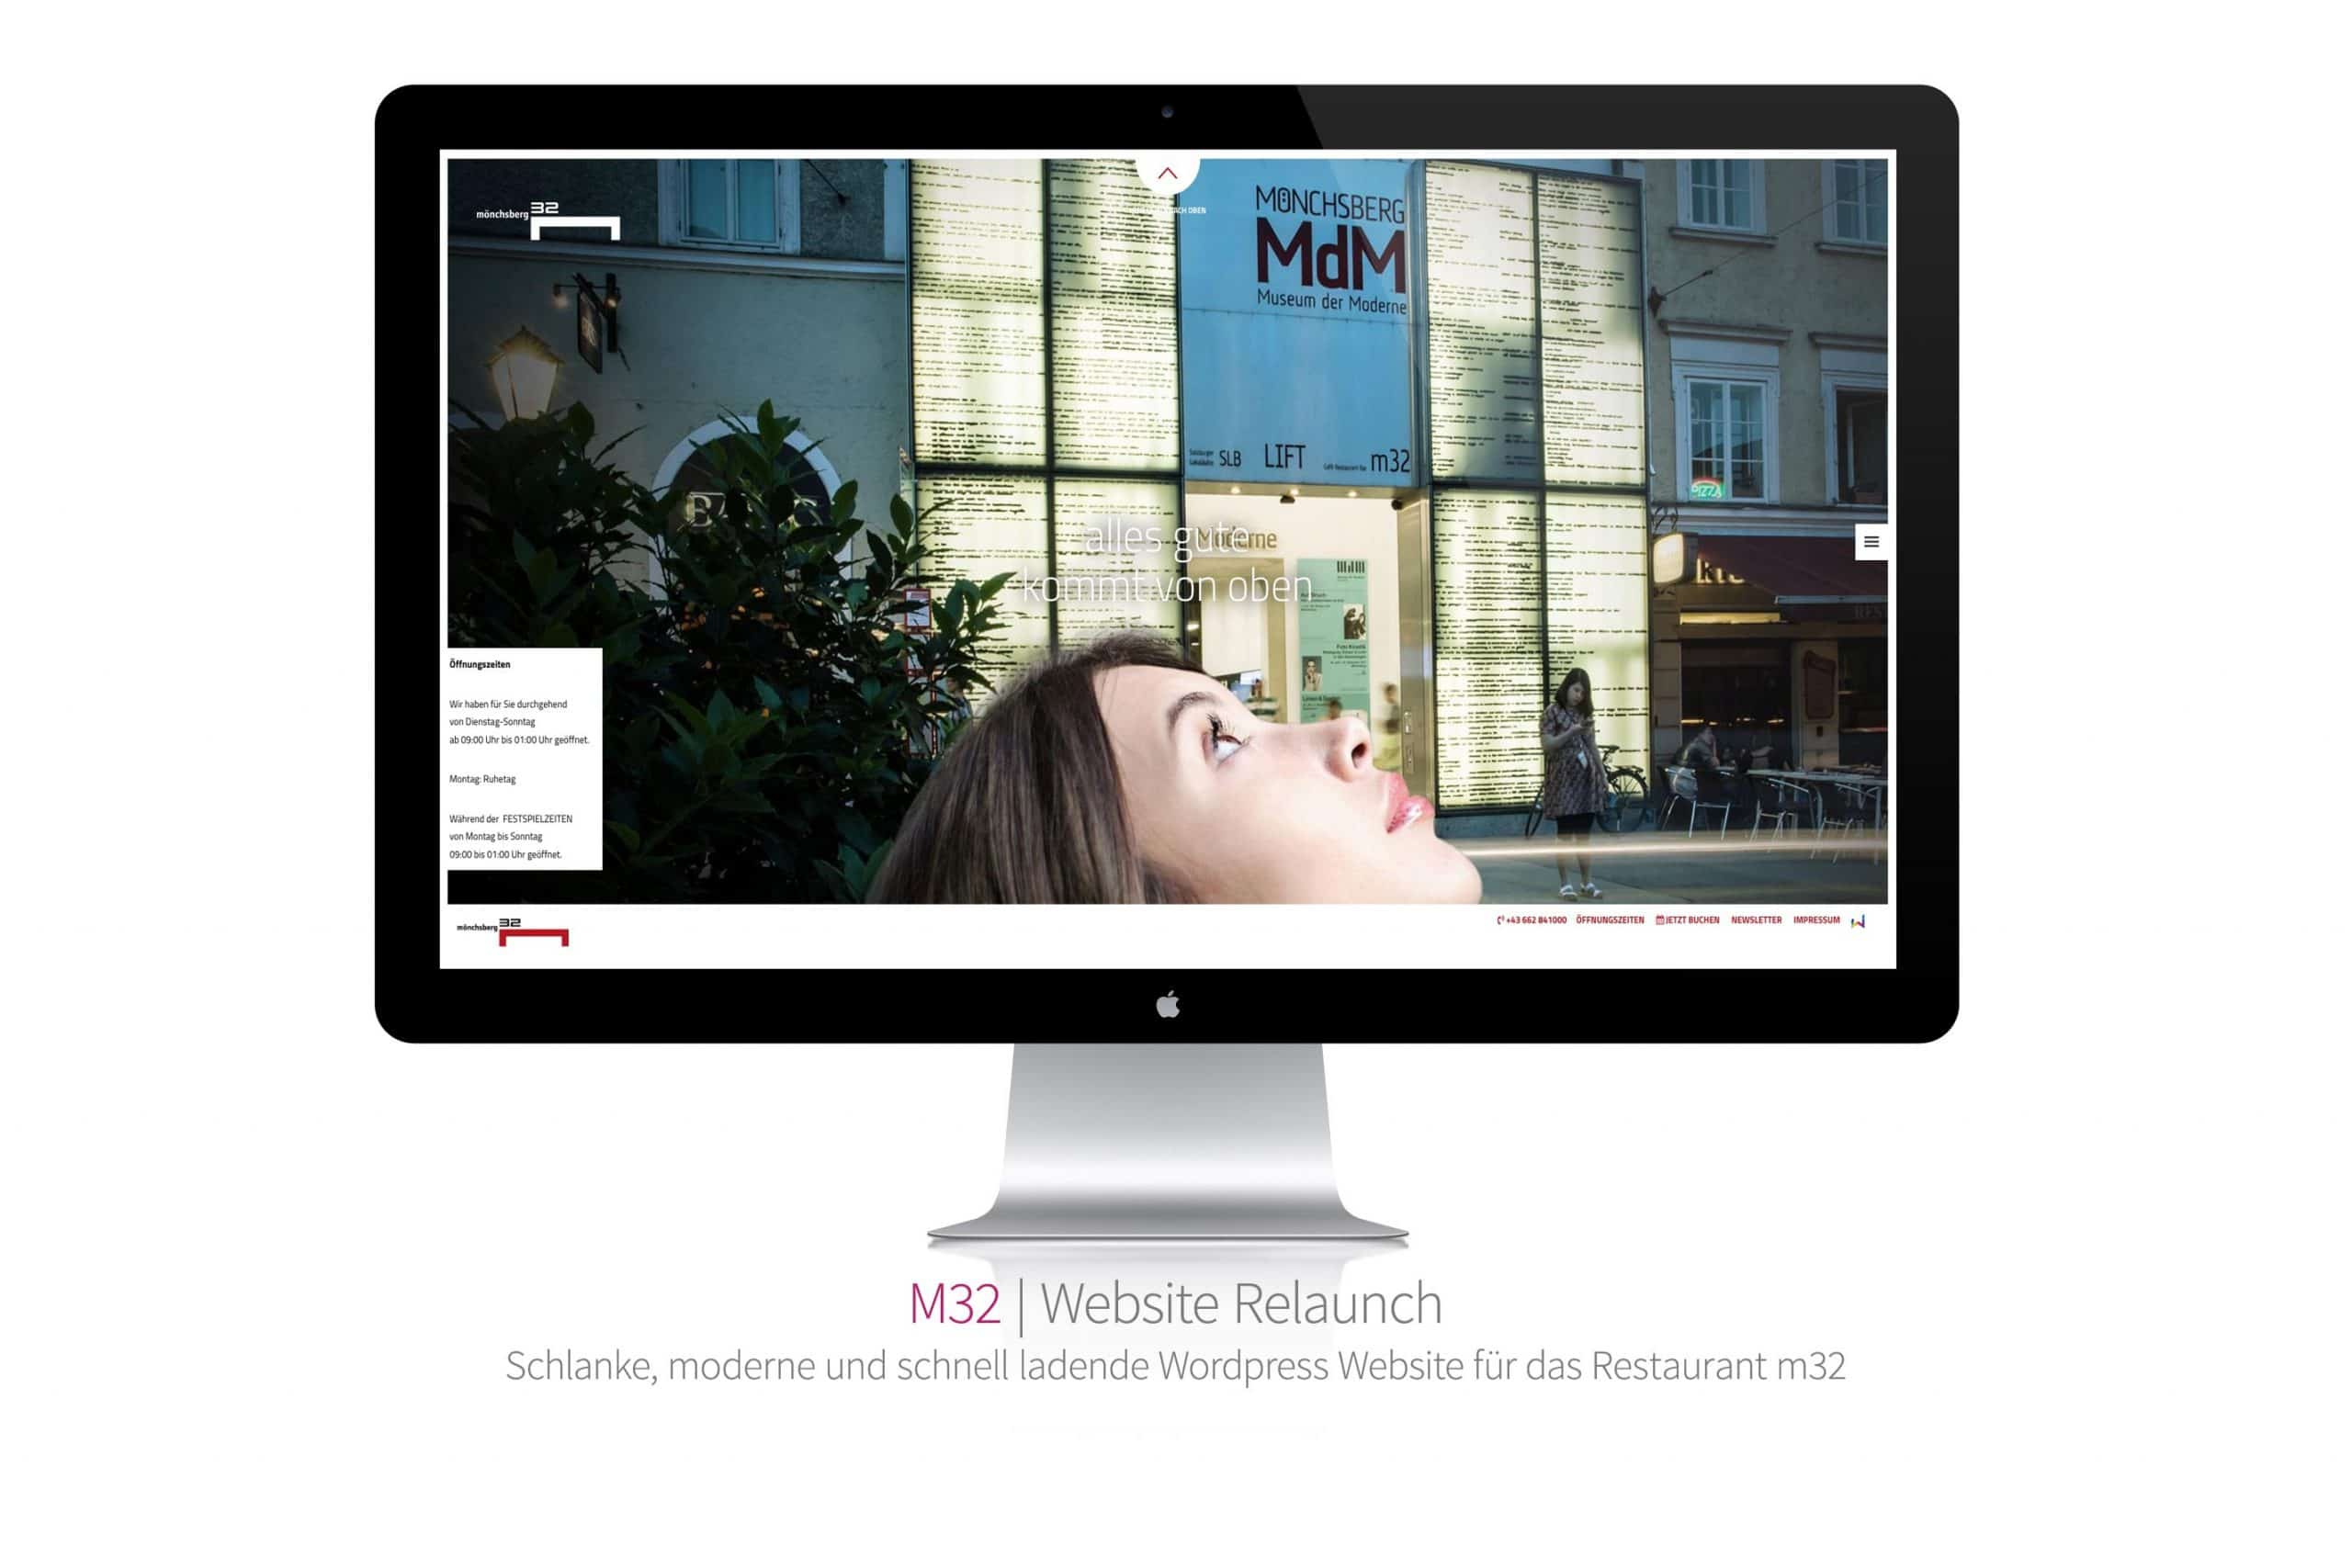 Referenzprojekt: Restaurant M32 Website